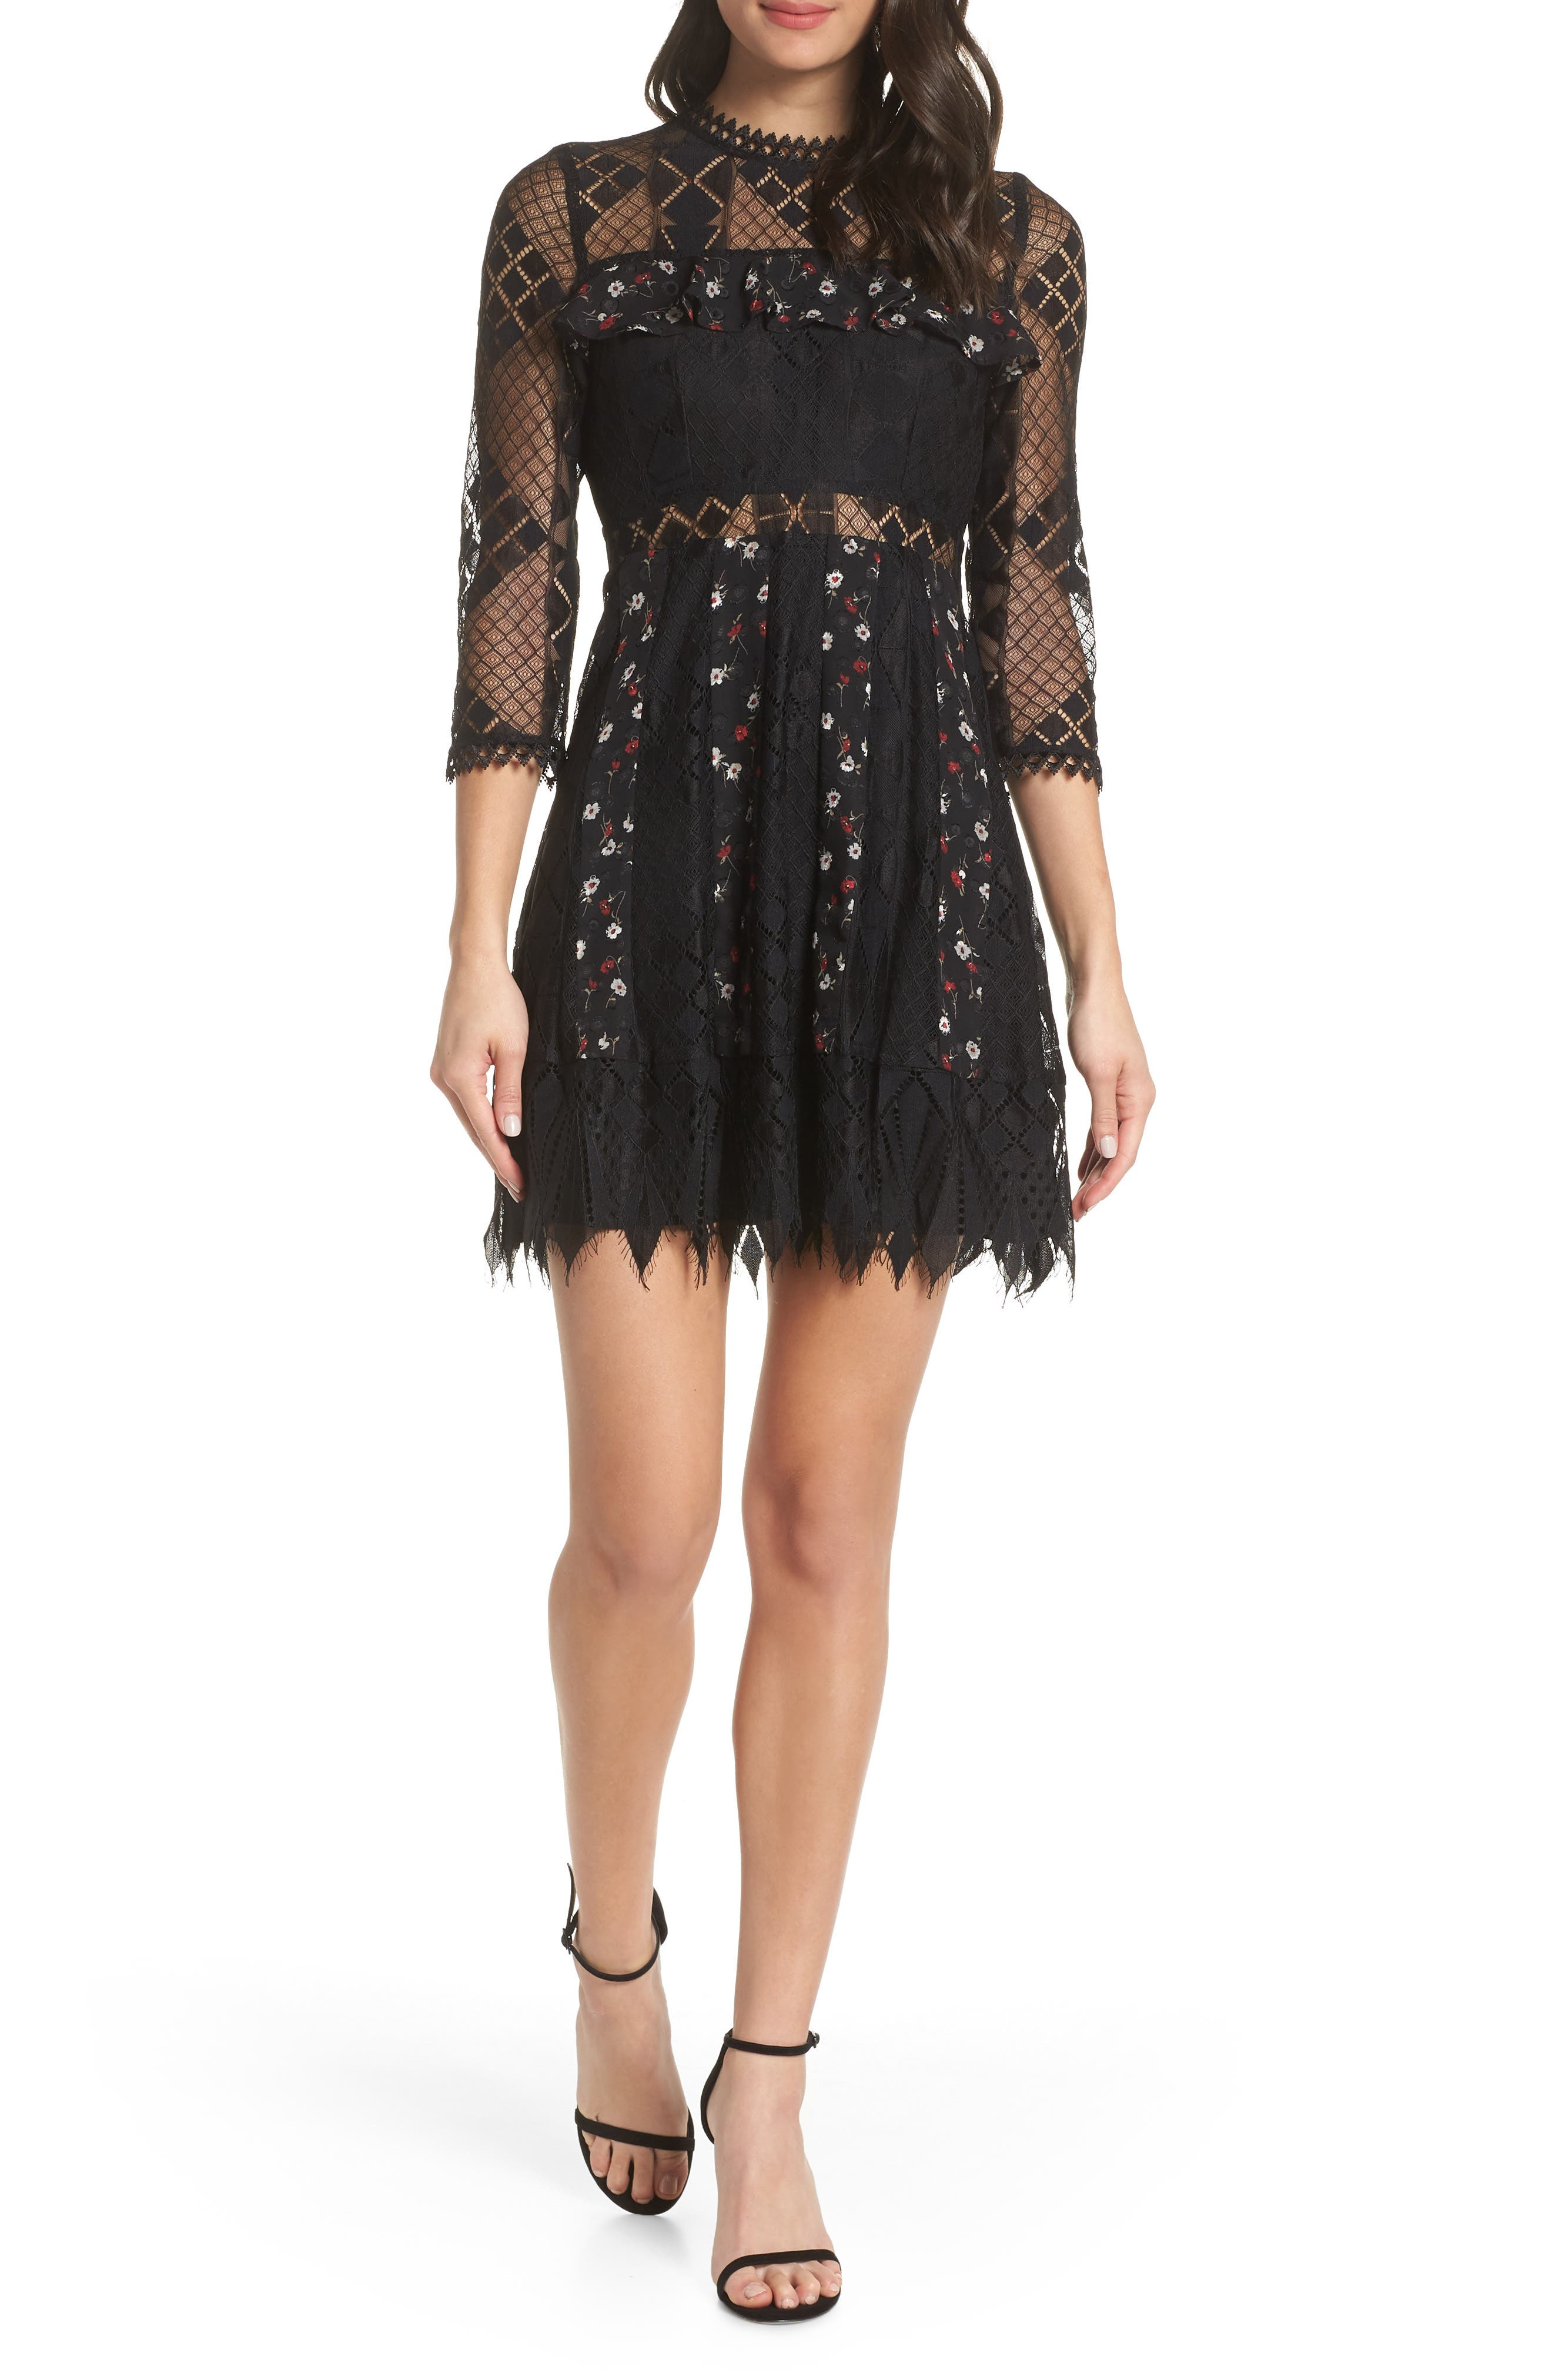 FOXIEDOX Josefine Lace & Clip Dot Cocktail Dress in Black Multi